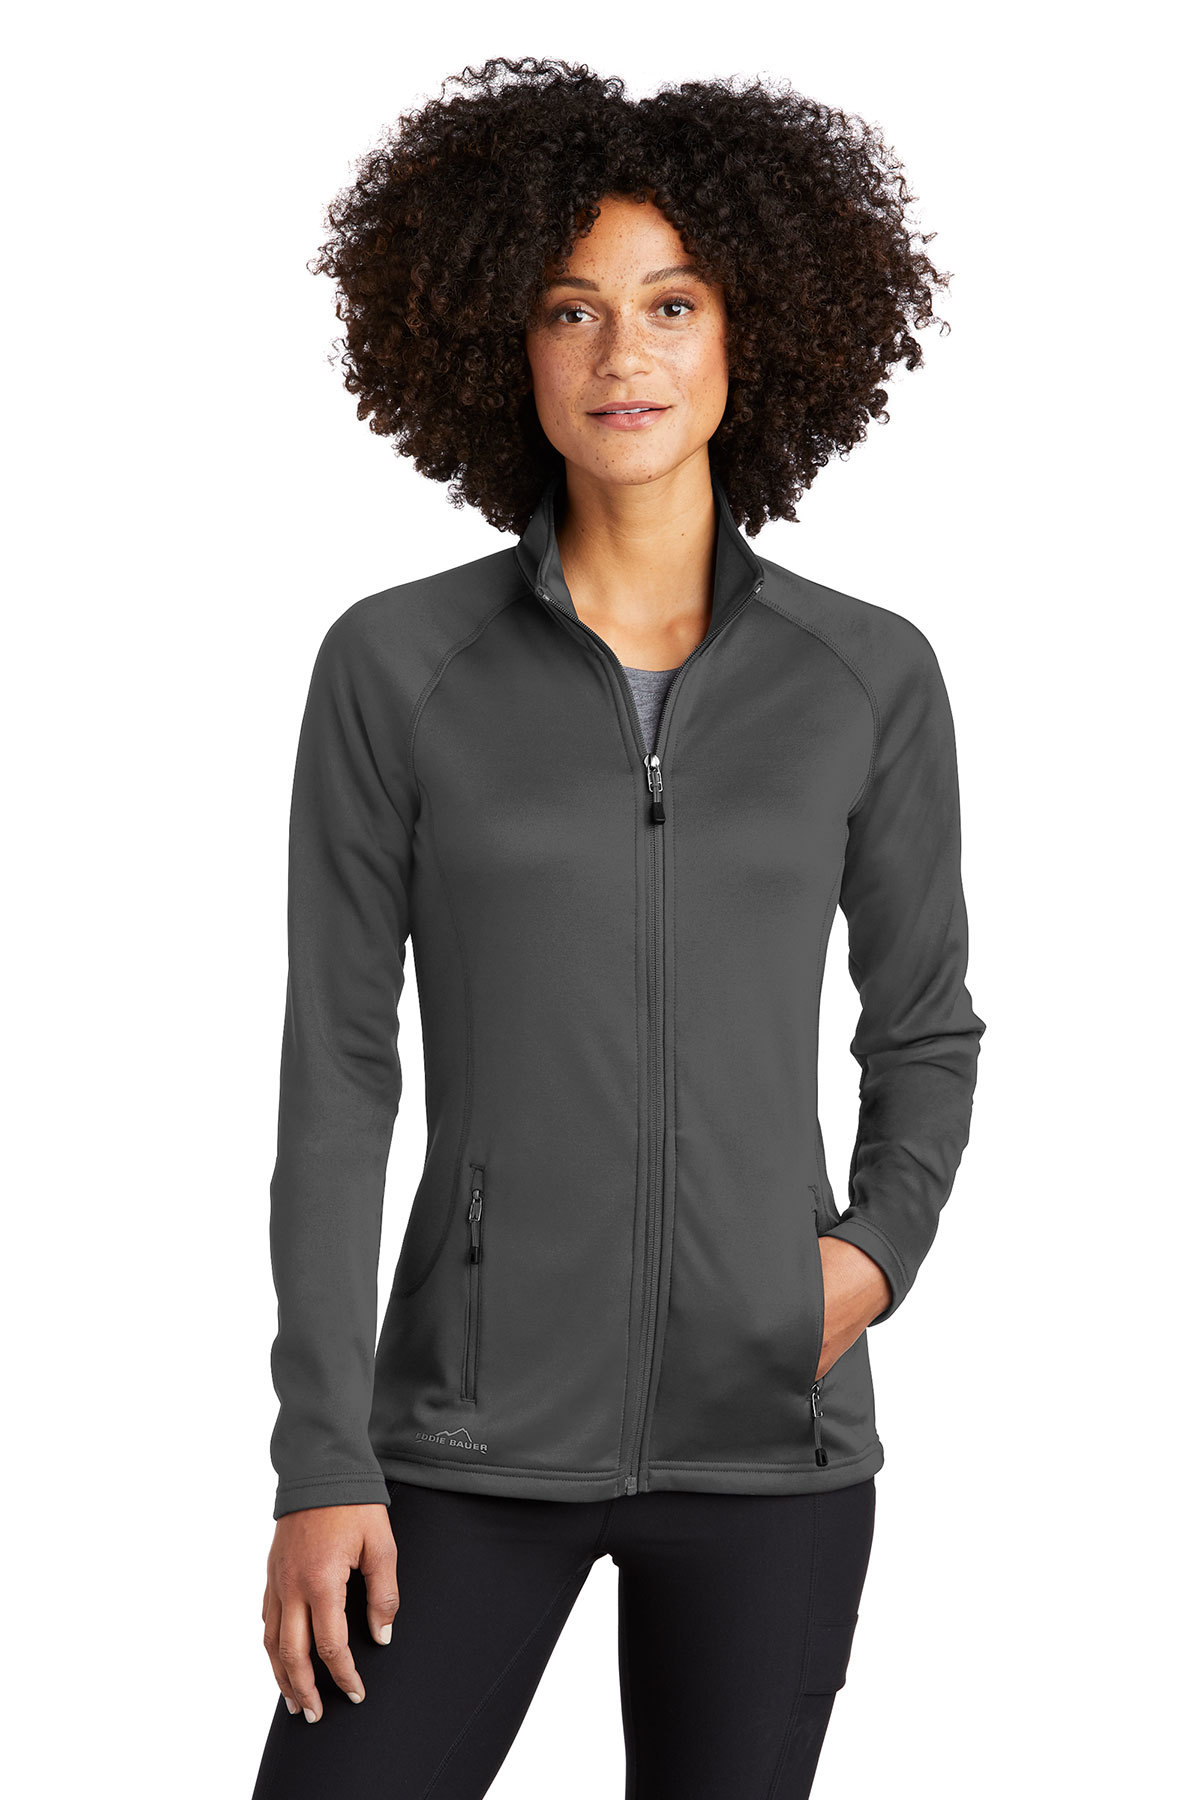 Eddie Bauer EB247 - Ladies Smooth Fleece Base Layer ...